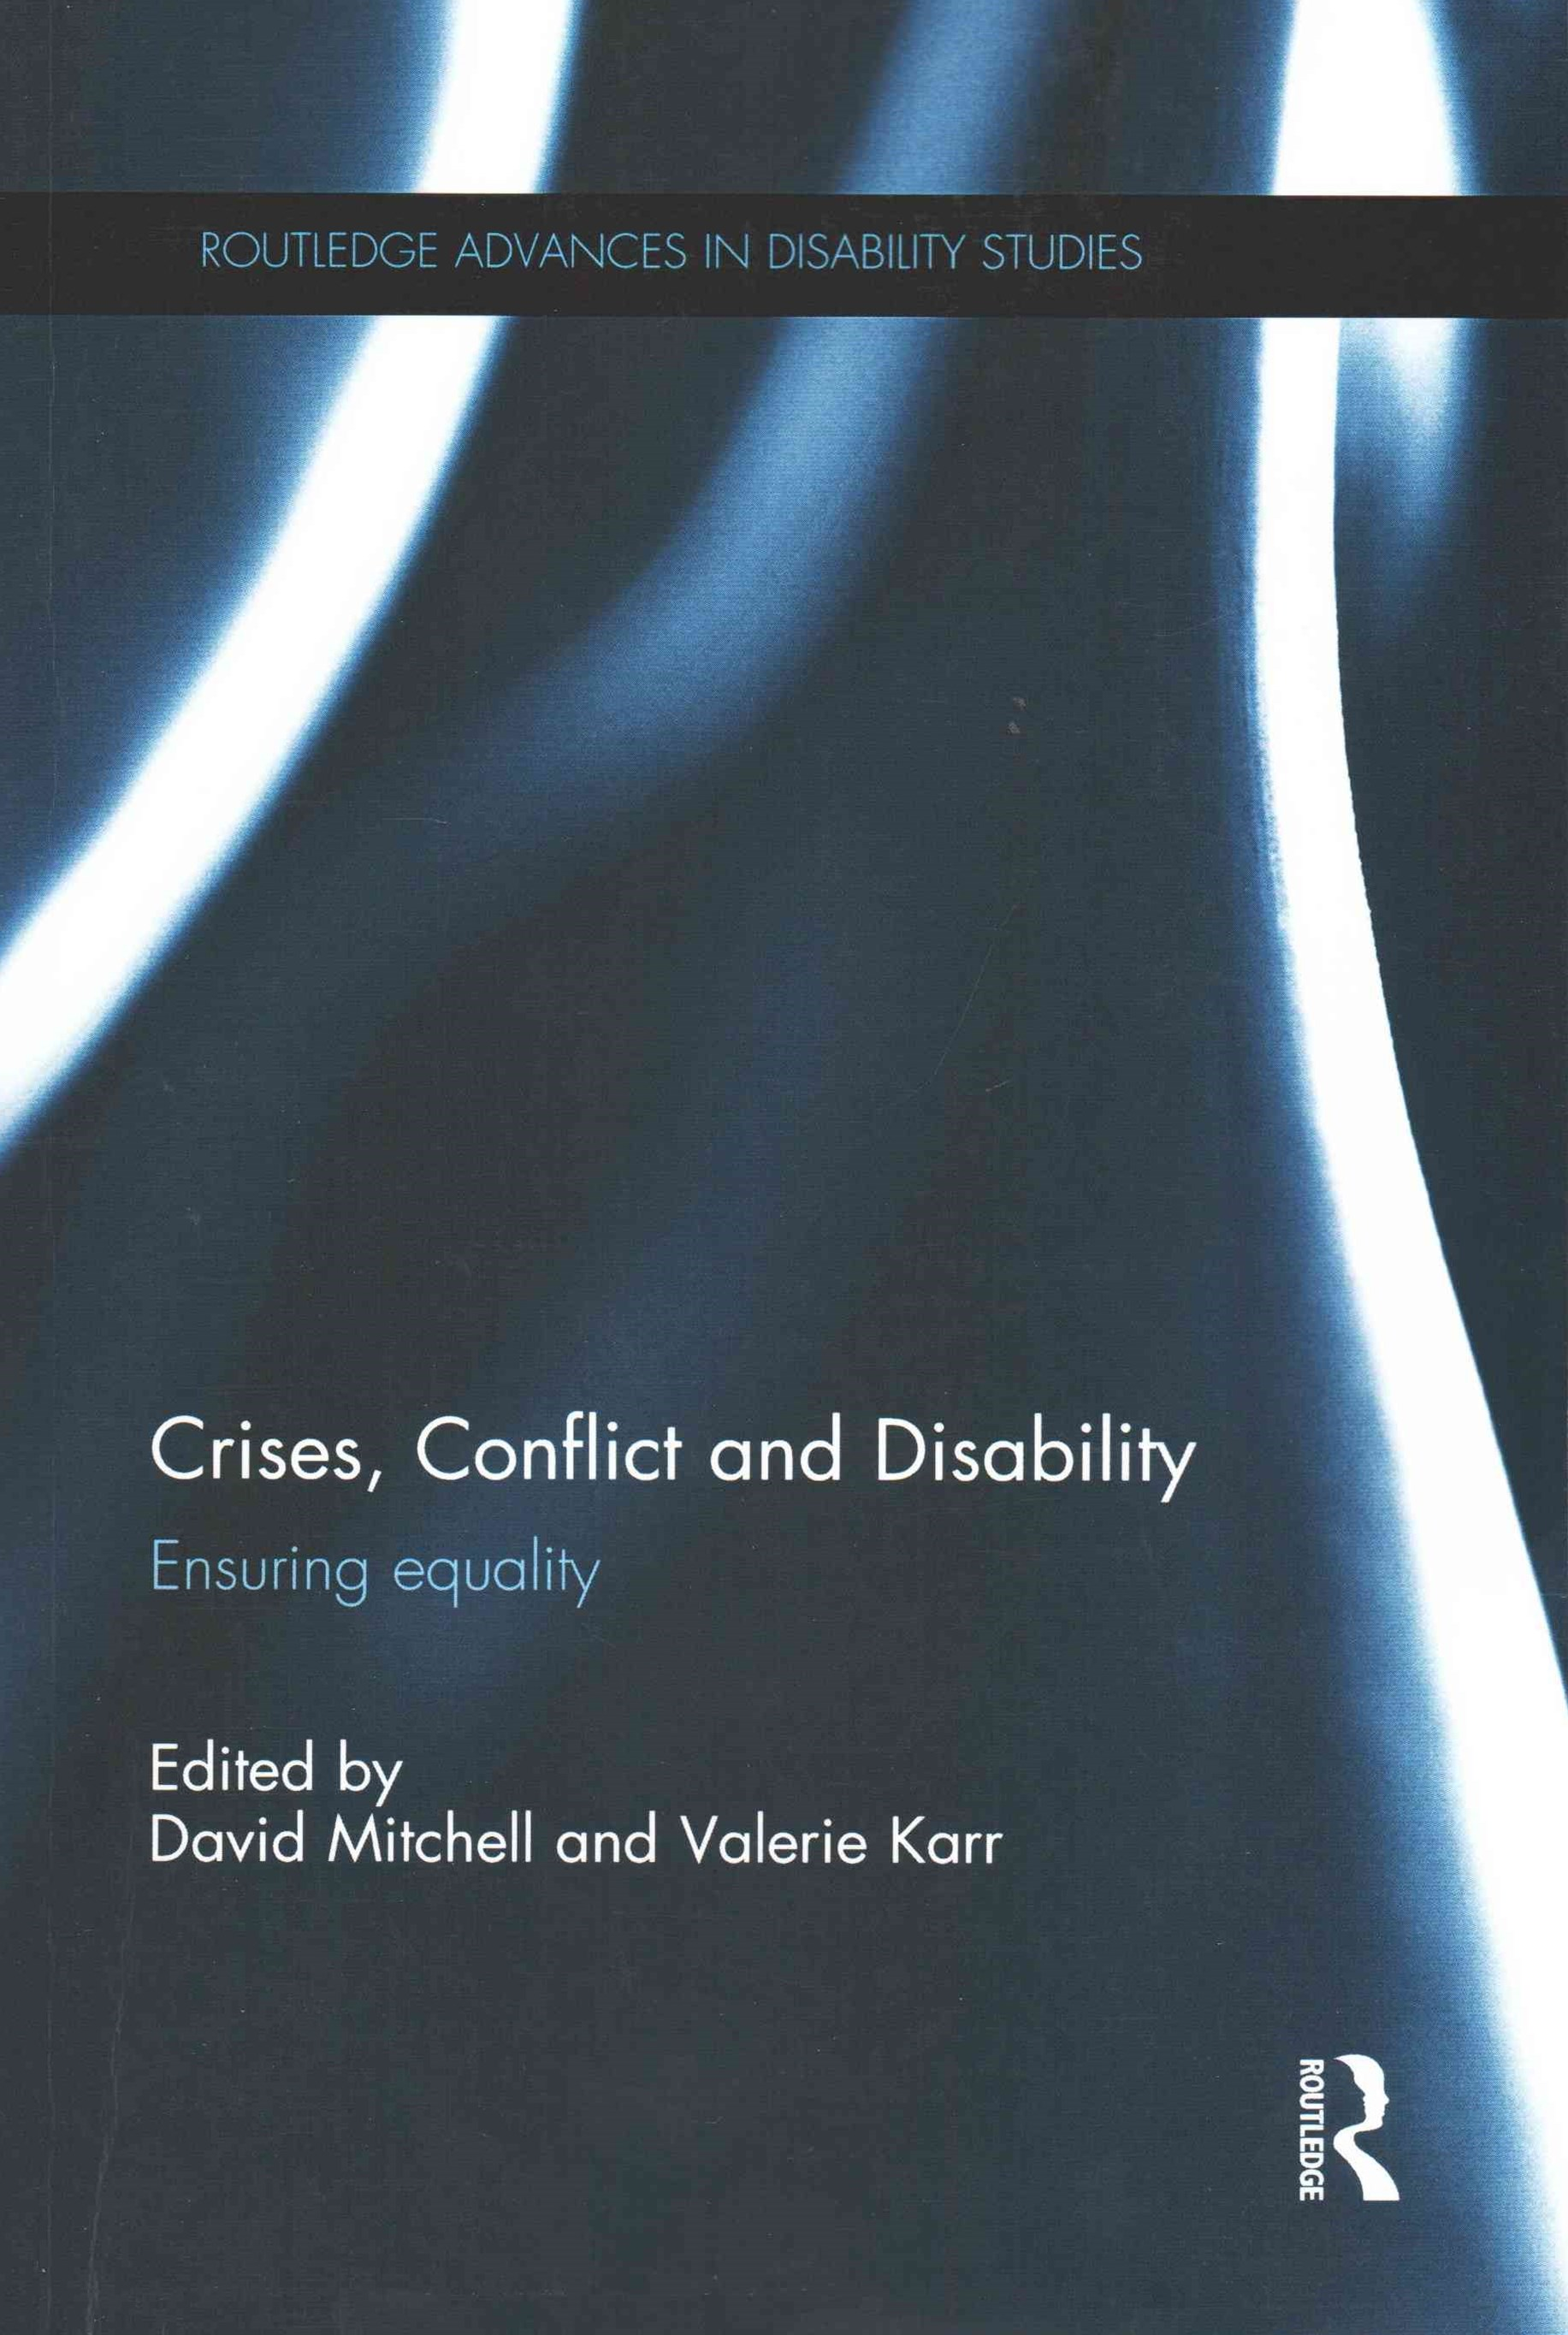 Crises, Conflict and Disability